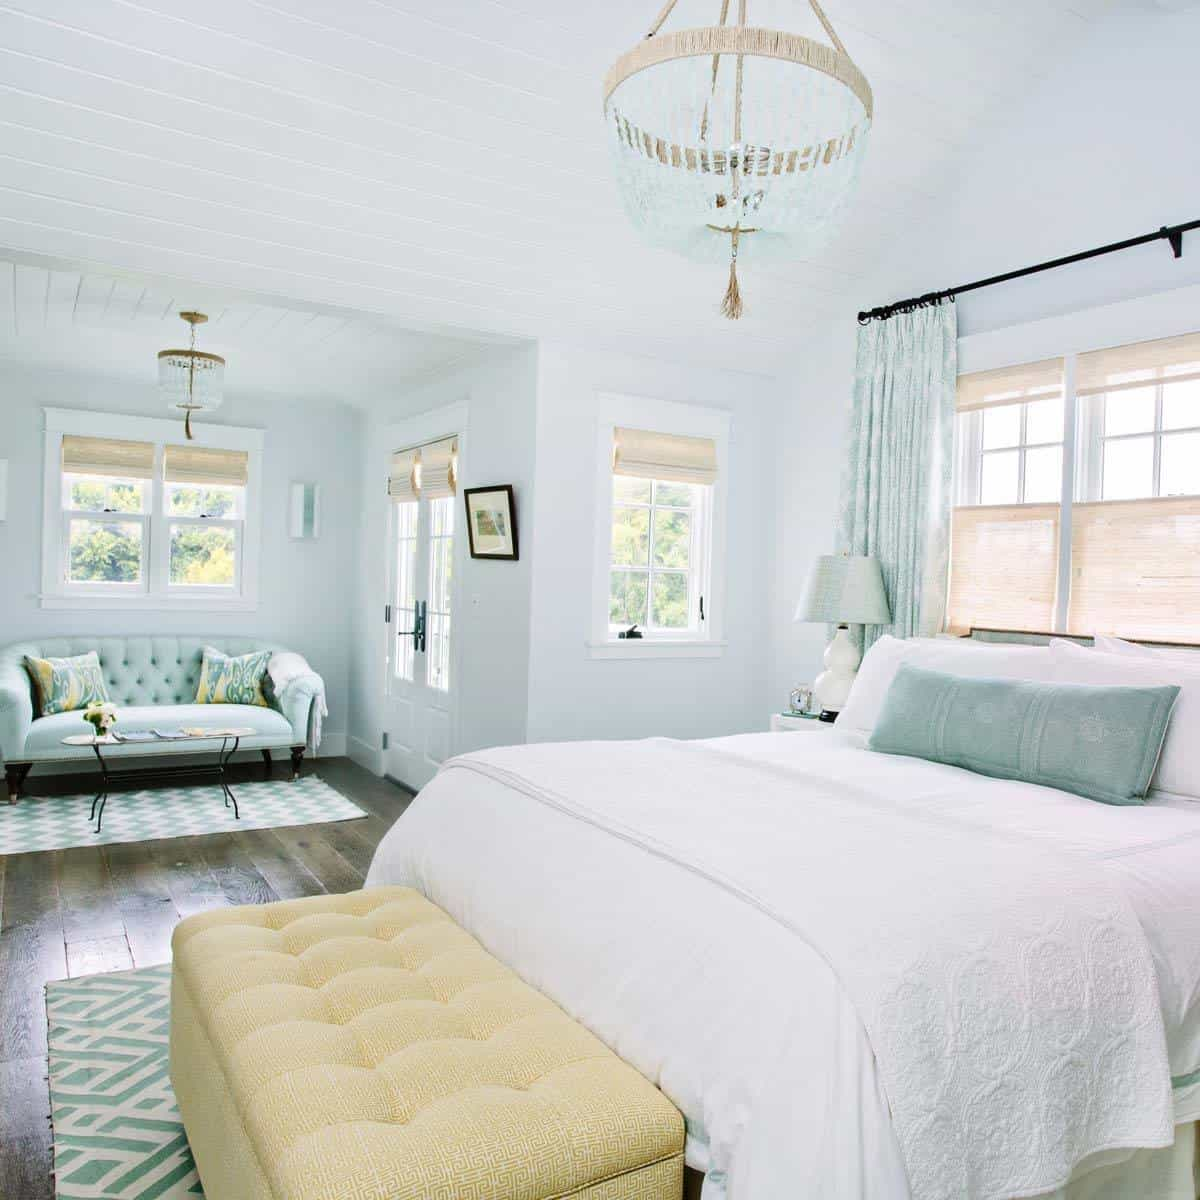 Beach House-Waterleaf Interiors-08-1 Kindesign